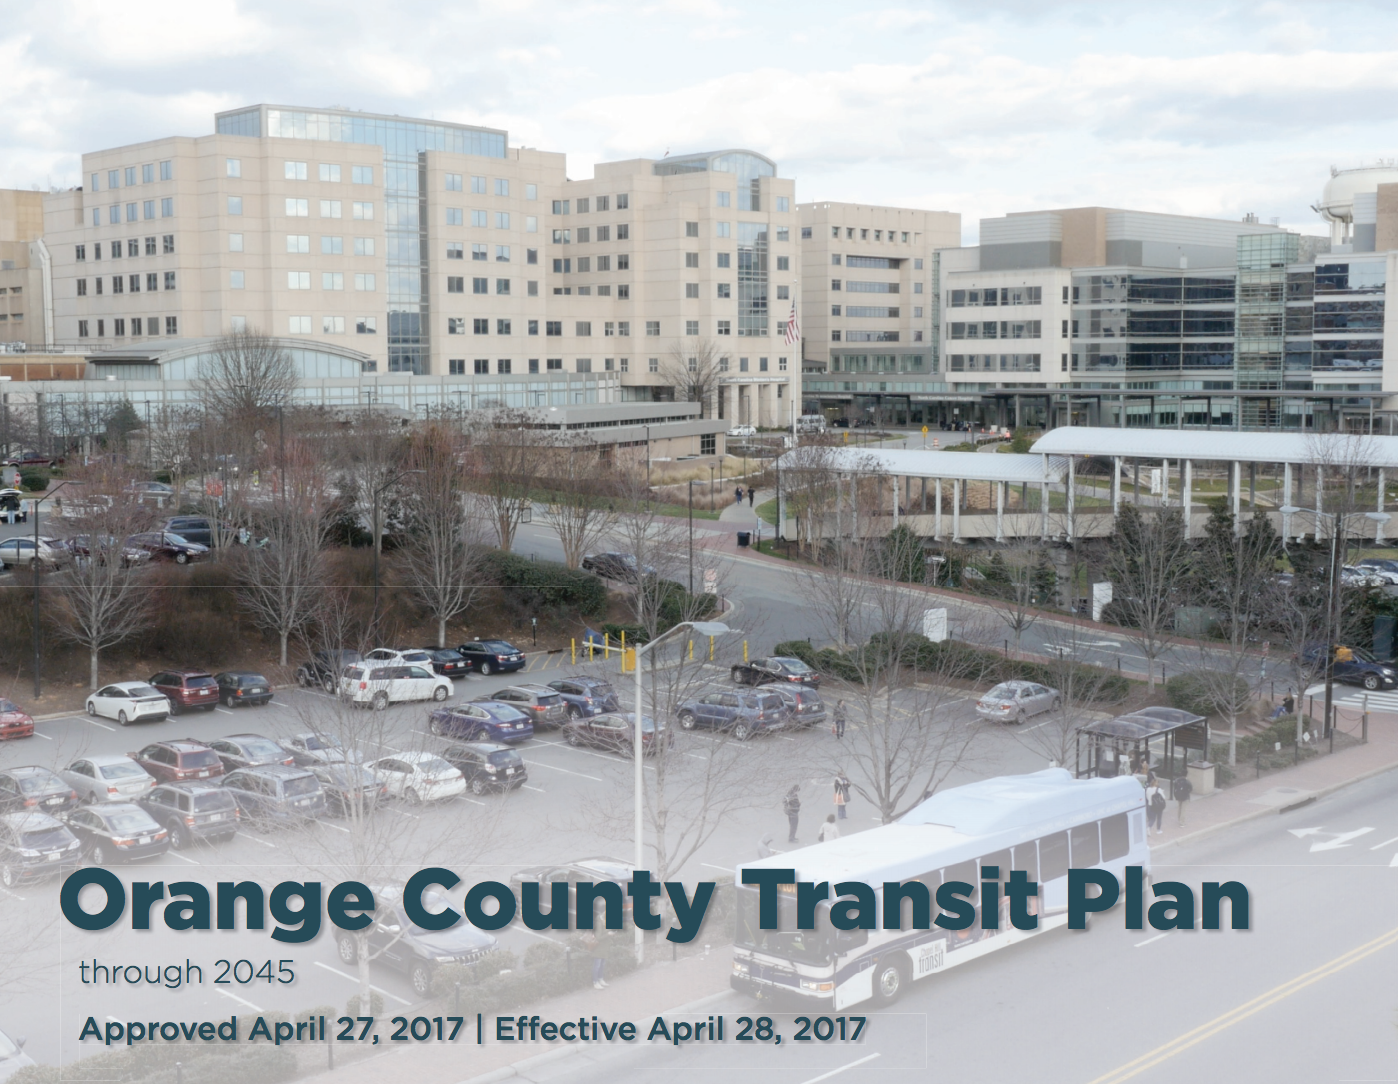 Orange County Transit Plan screenshot